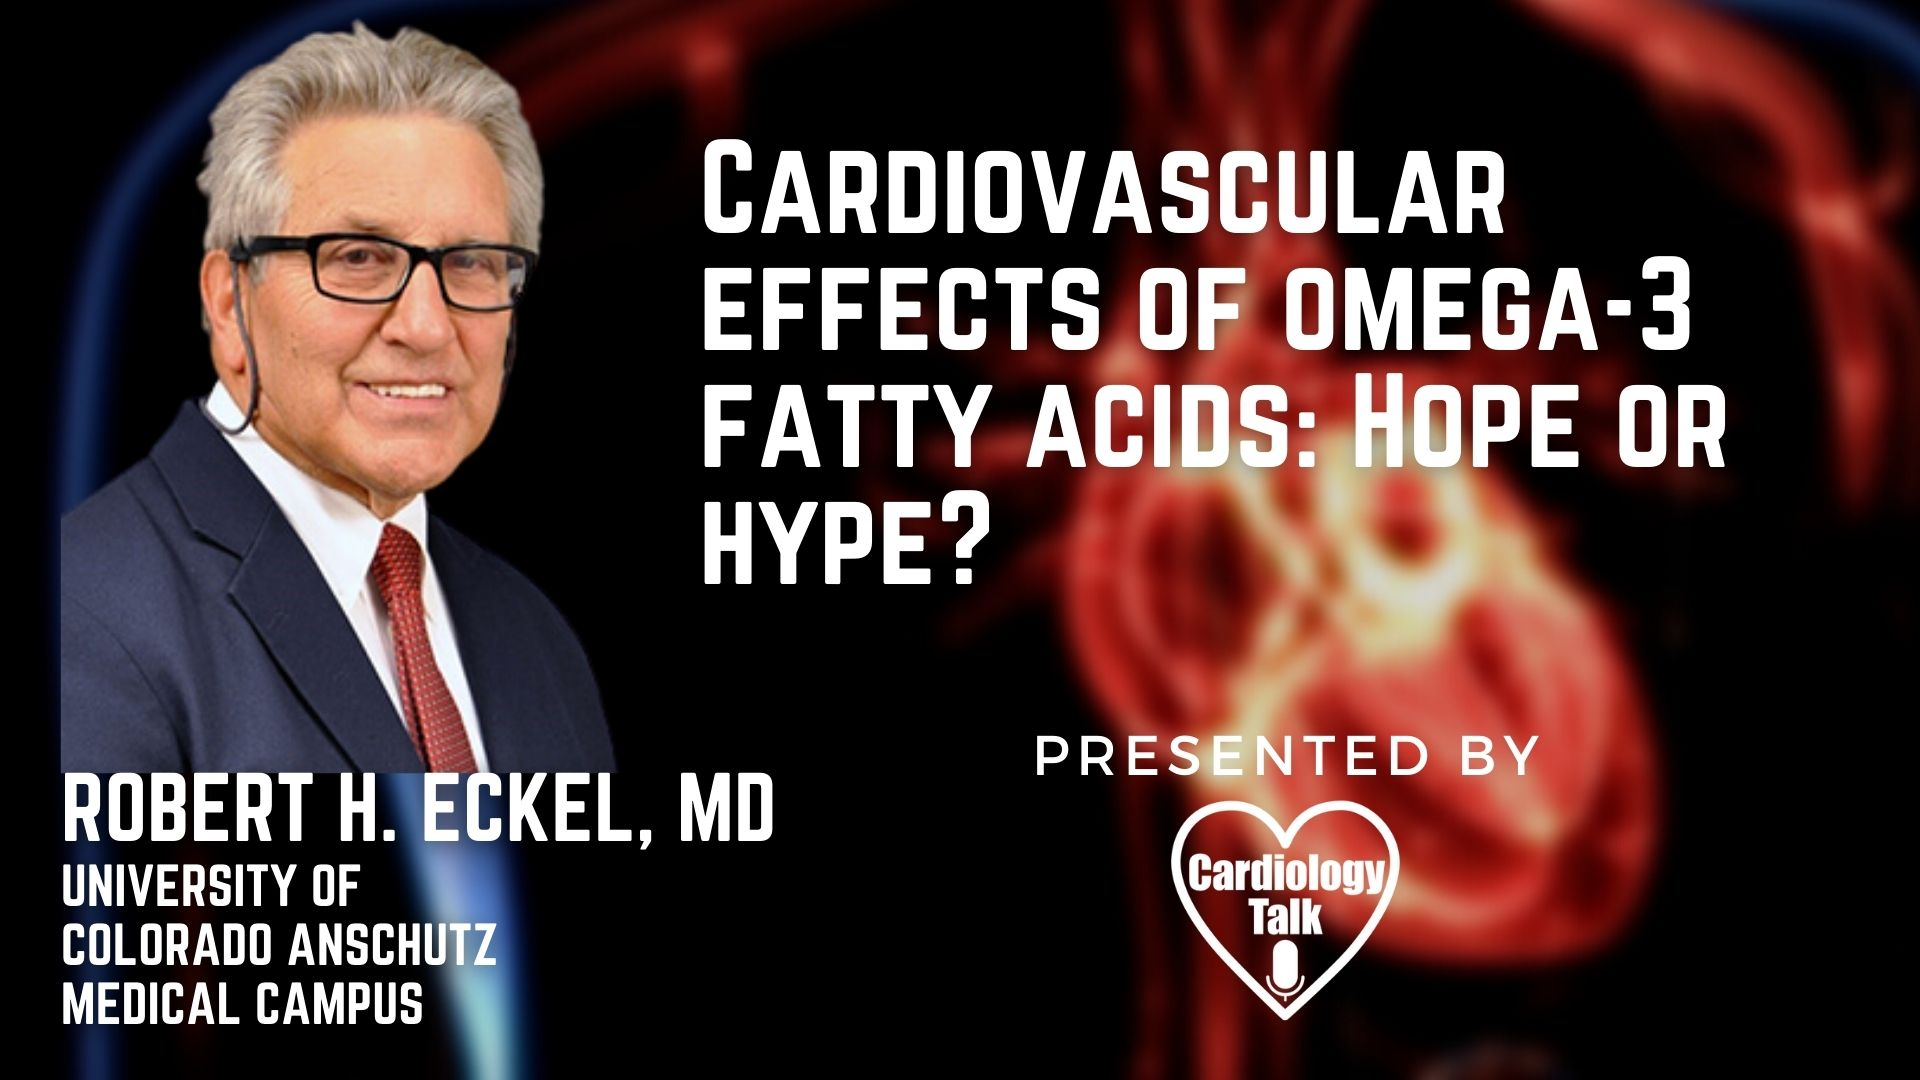 Robert H. Eckel, MD @CUAnschutz @CUDeptMedicine #Cardiovascular #Cardiology #Research Review Article - Cardiovascular effects of omega-3 fatty acids: Hope or hype?